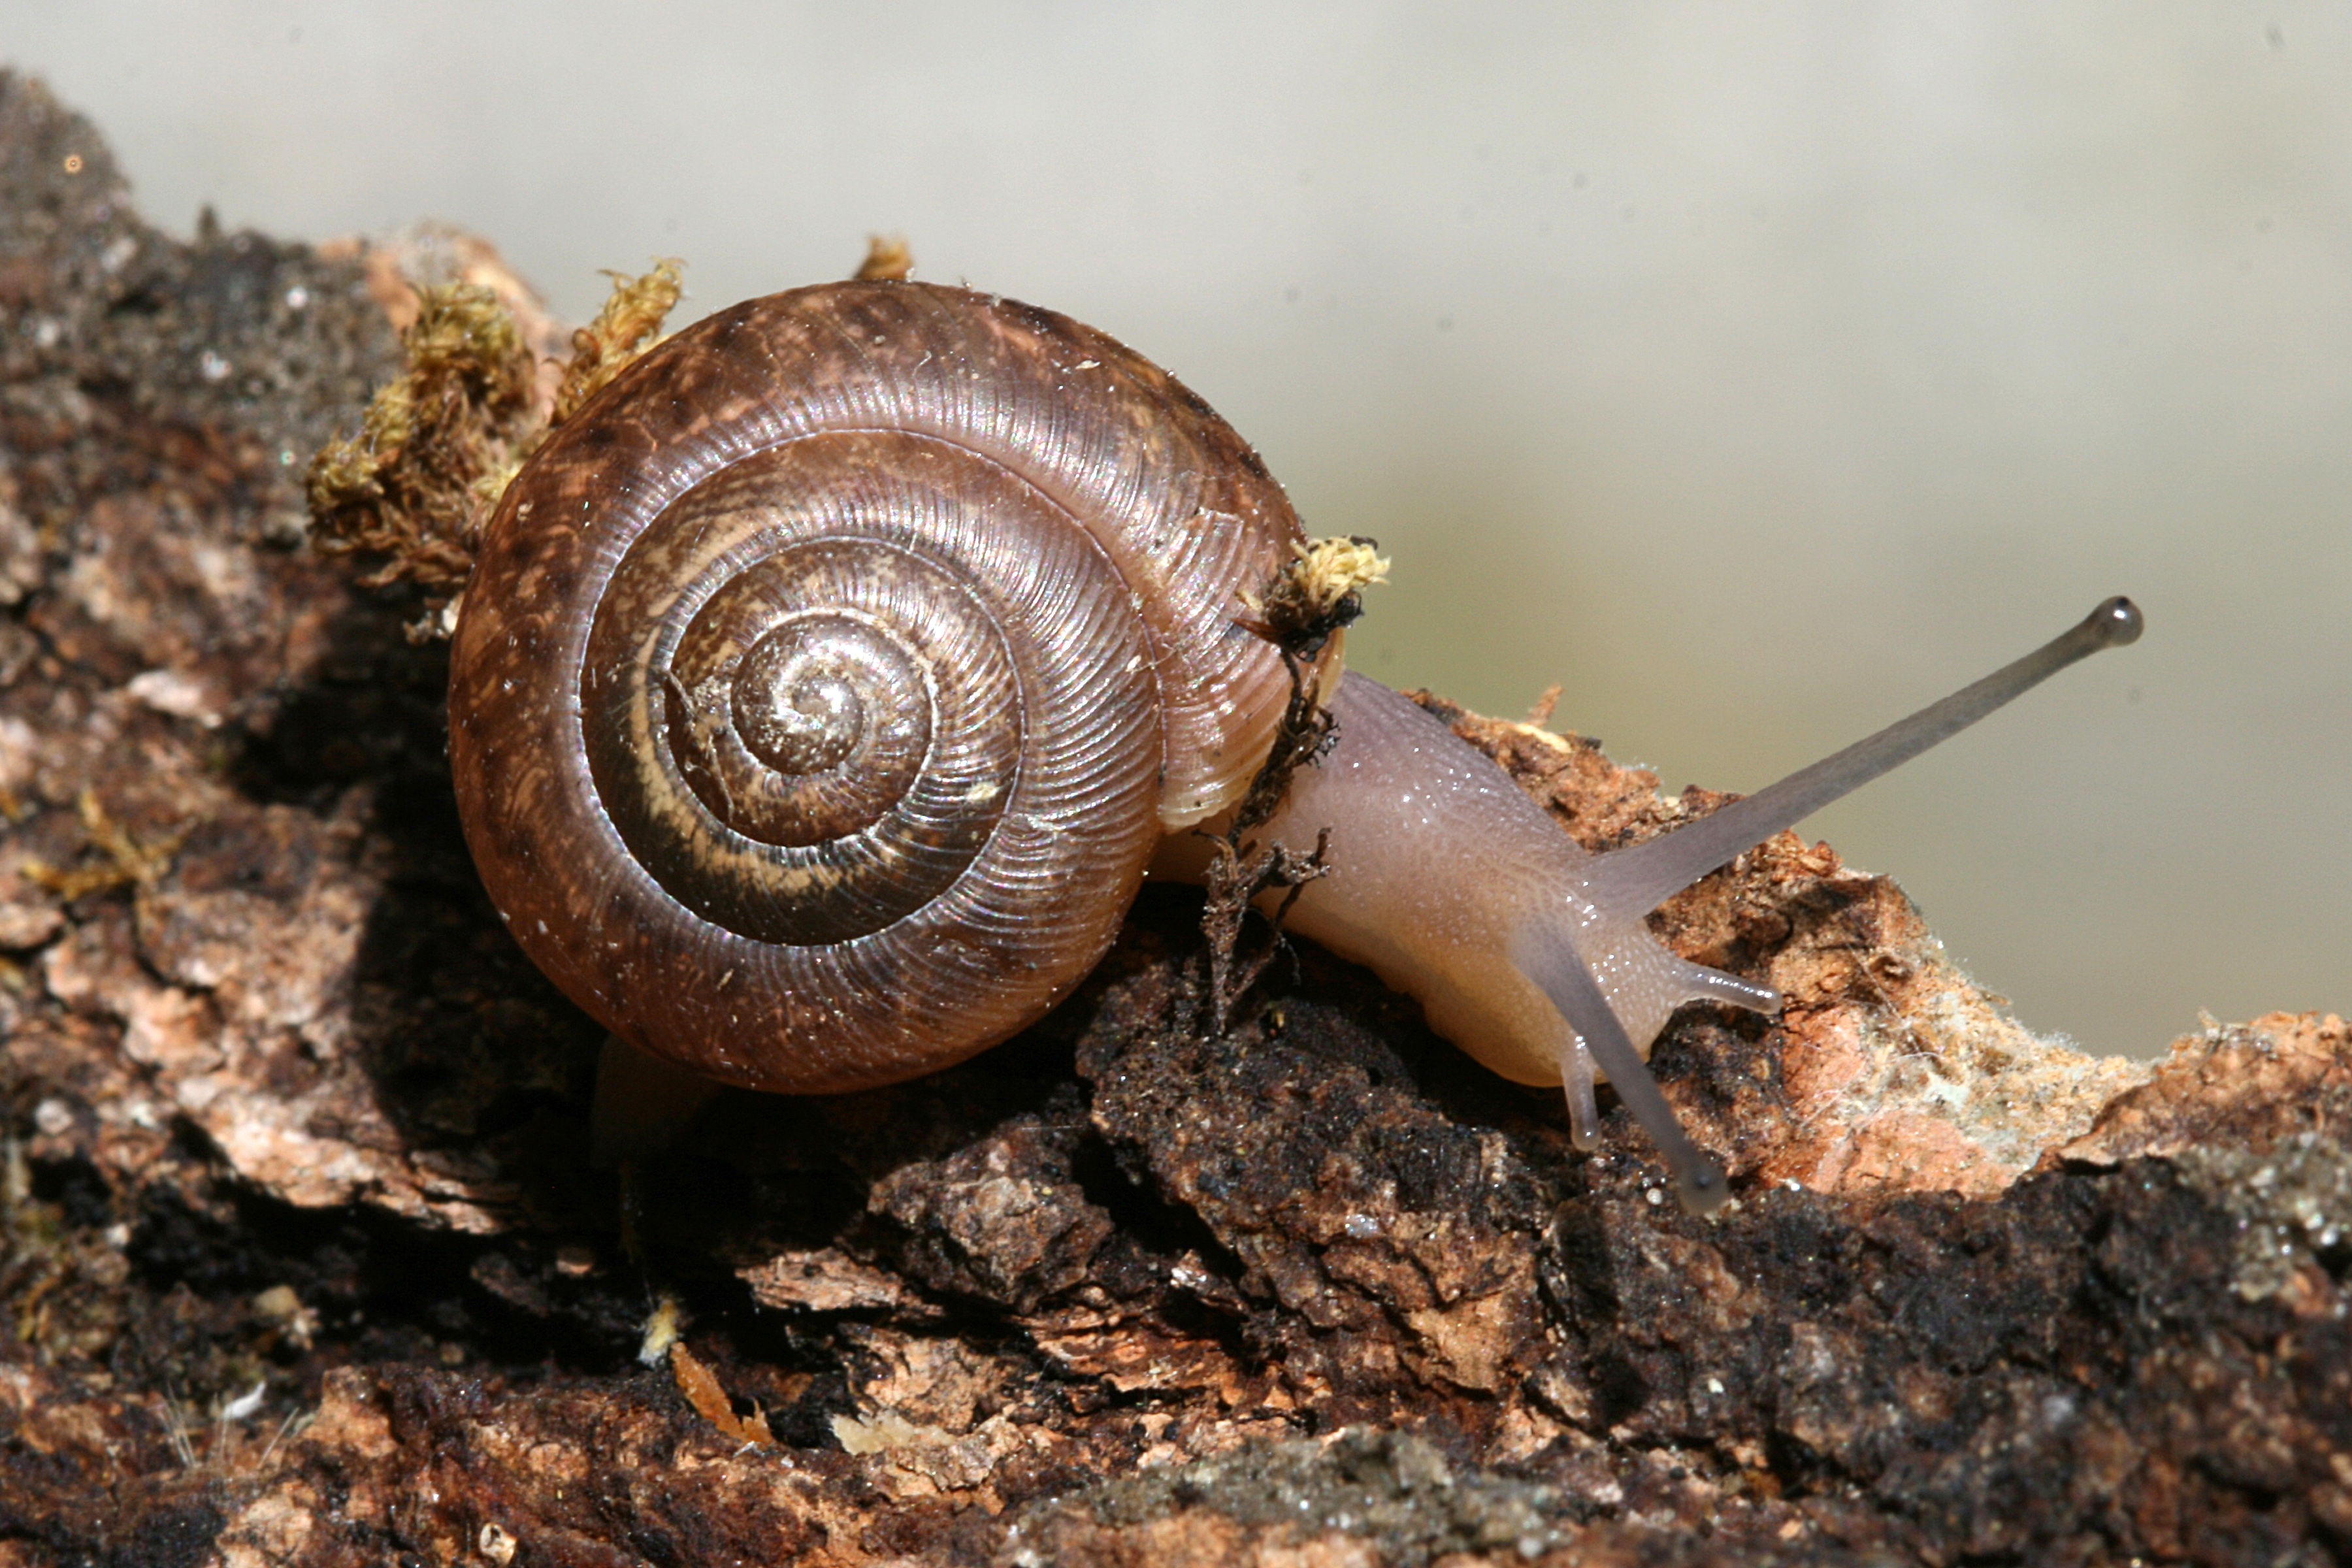 I wish I were a snail